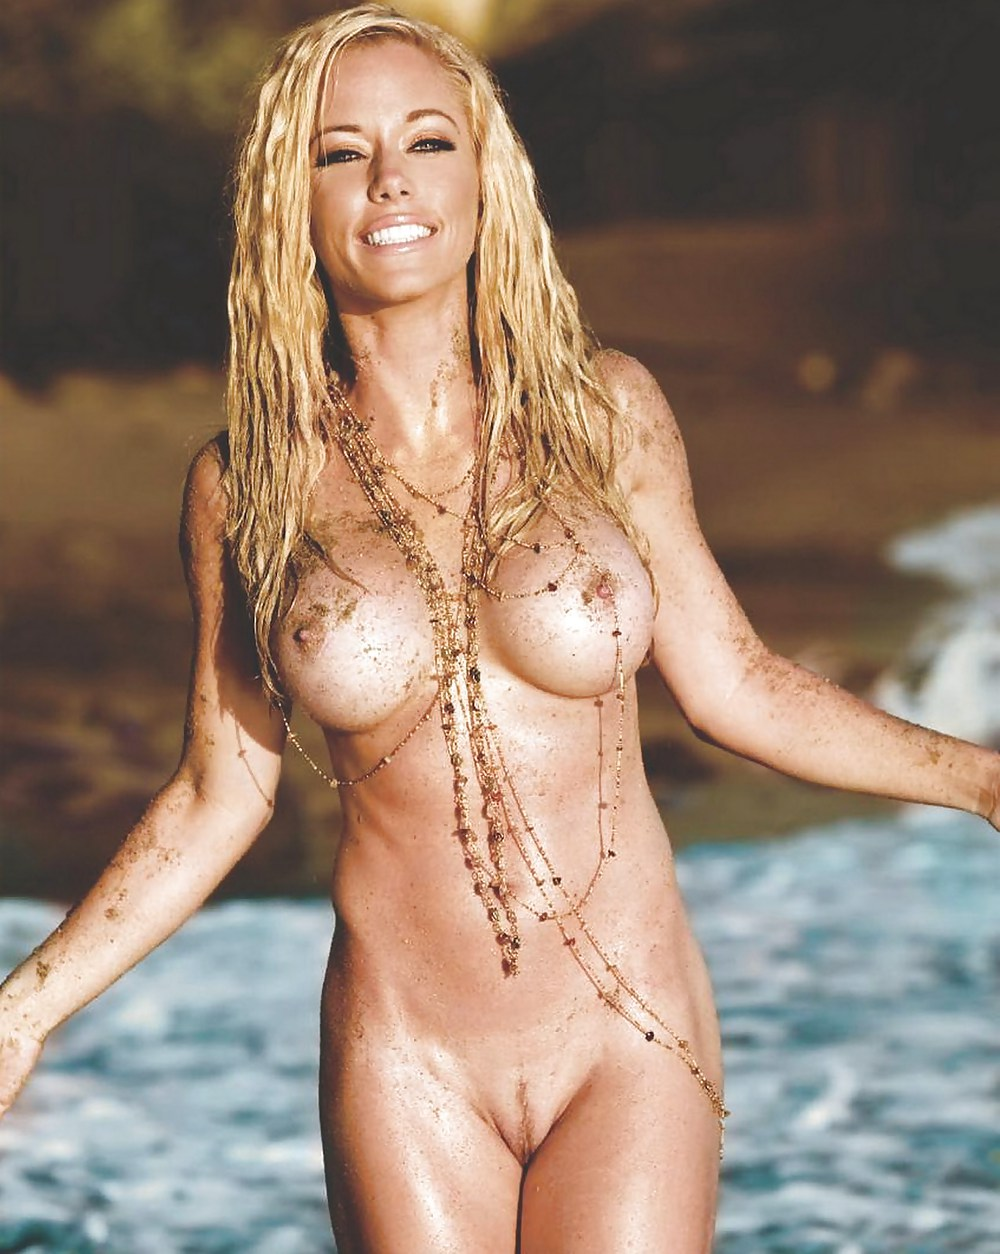 Free preview of kendra wilkinson naked in celebrity sex tape or home photo